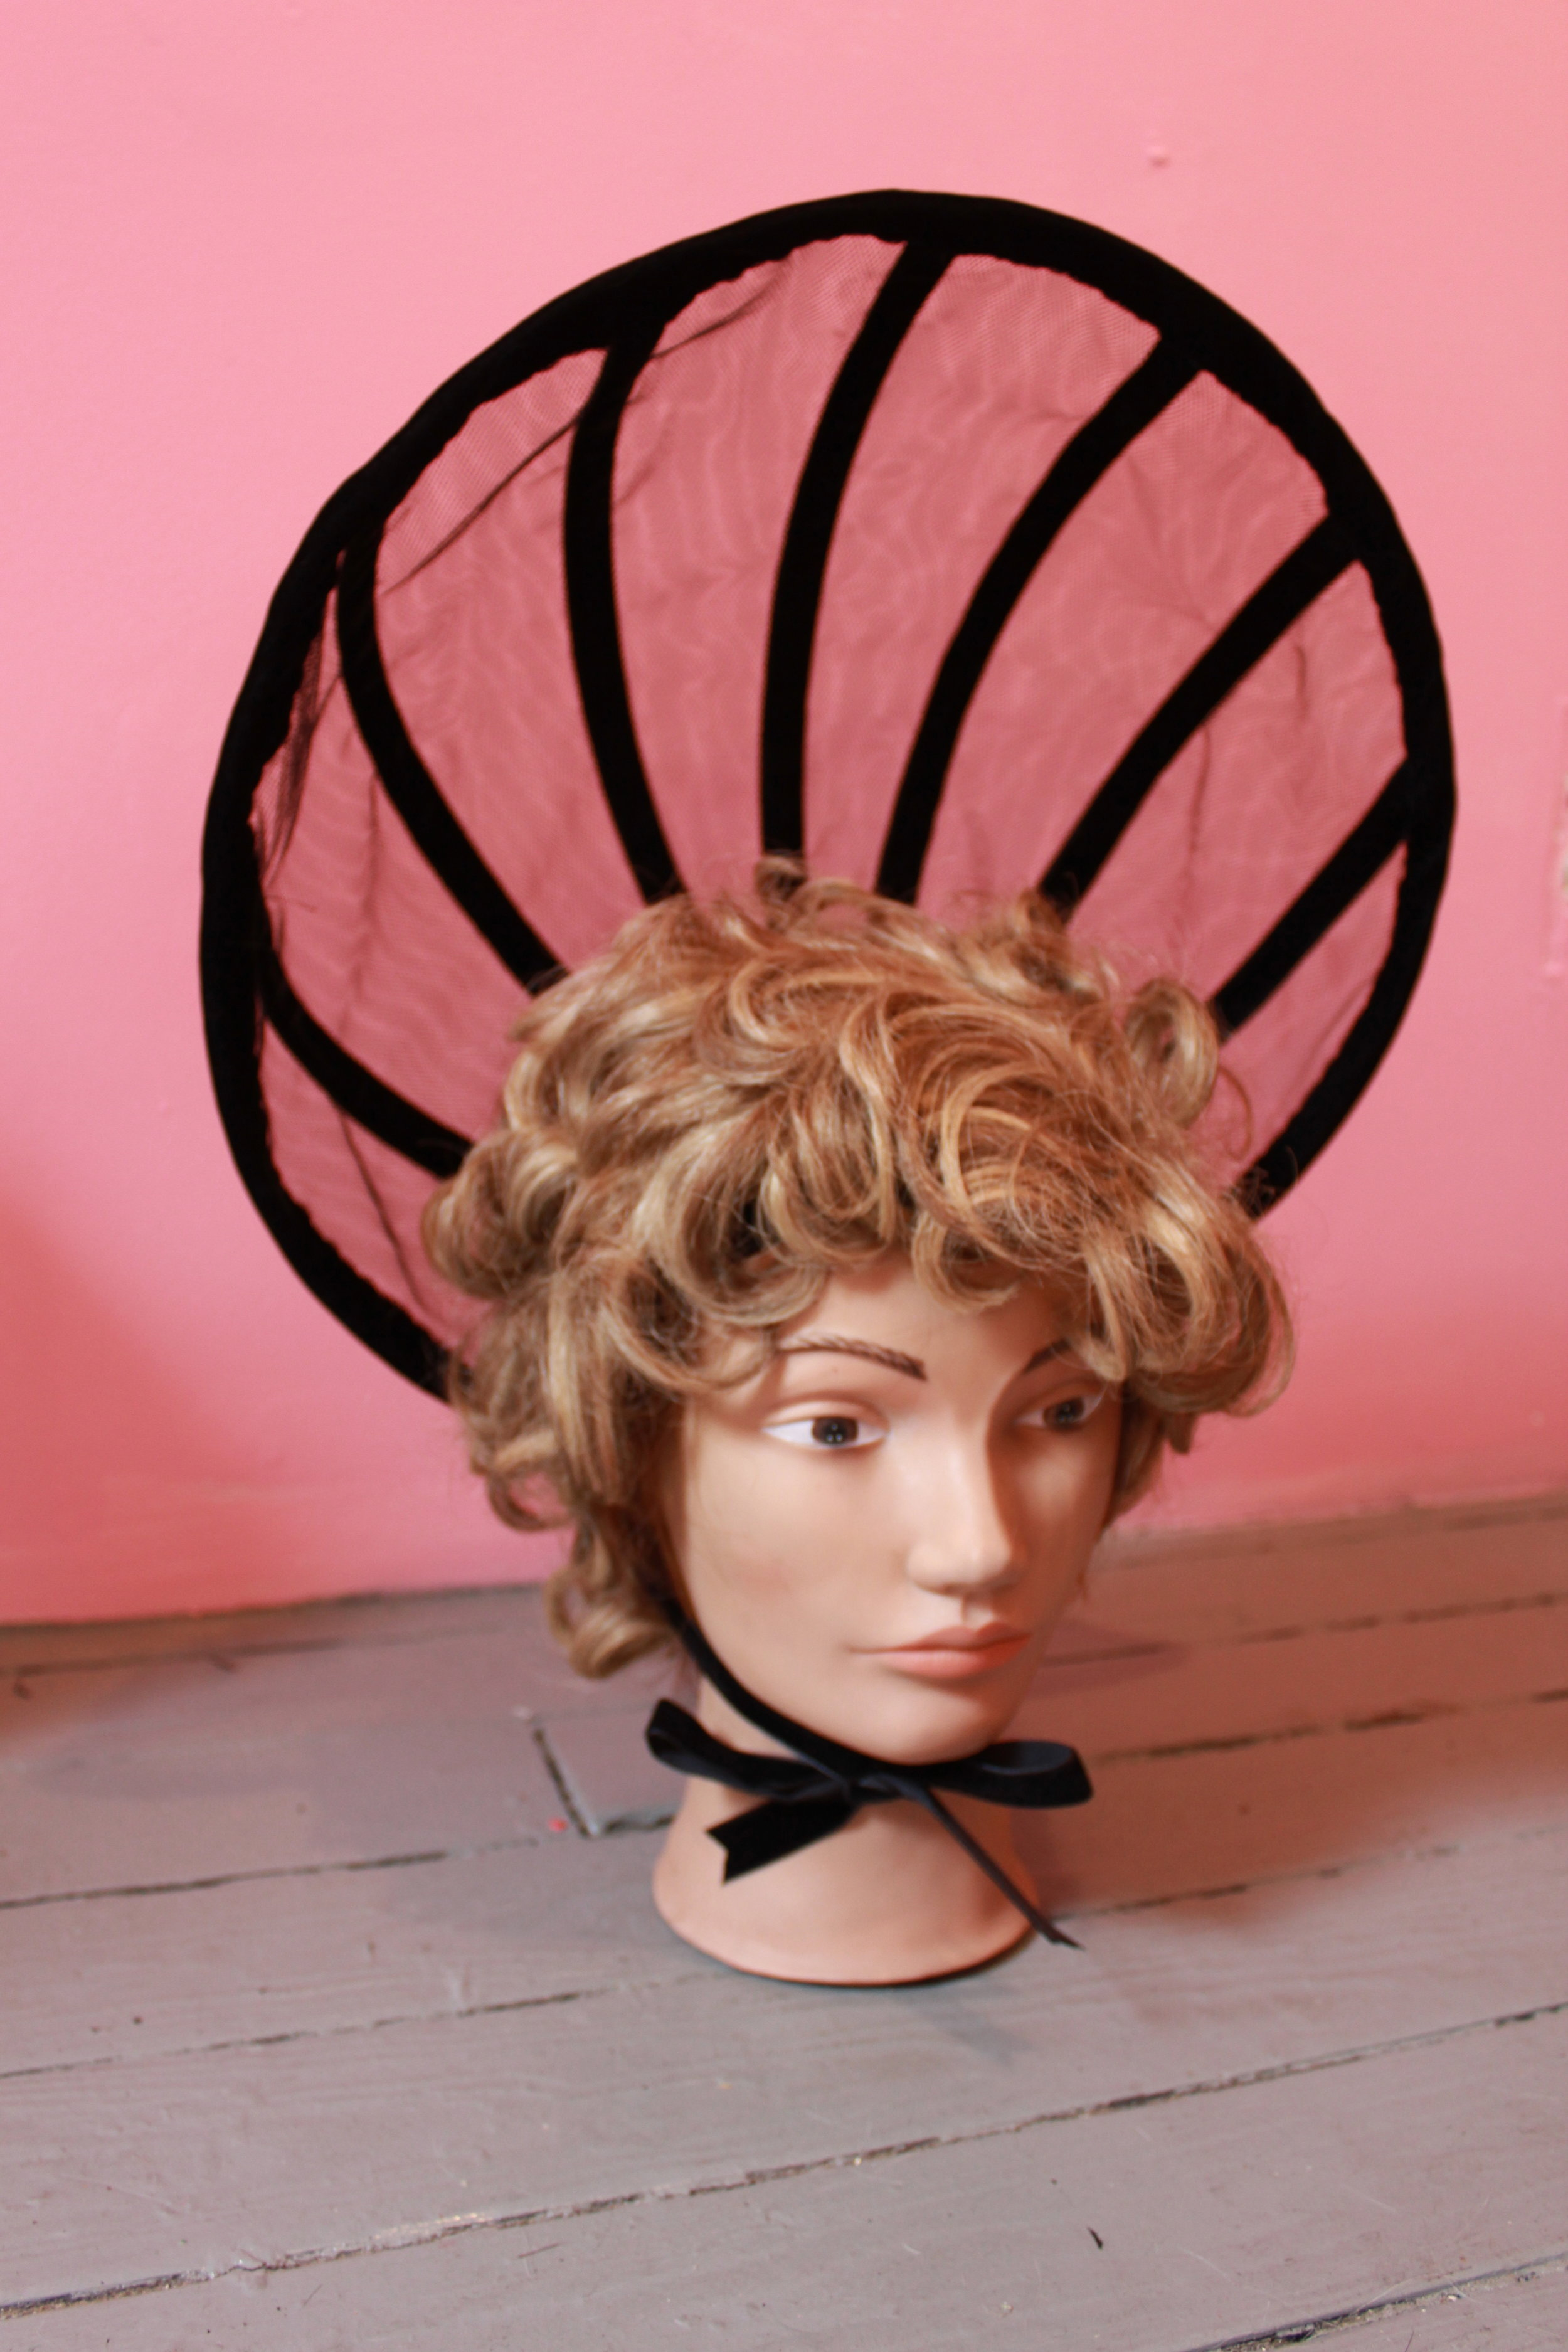 2013 Leather, Velvet, and Tulle custom bonnet in collaboration with Daughters of Devotion